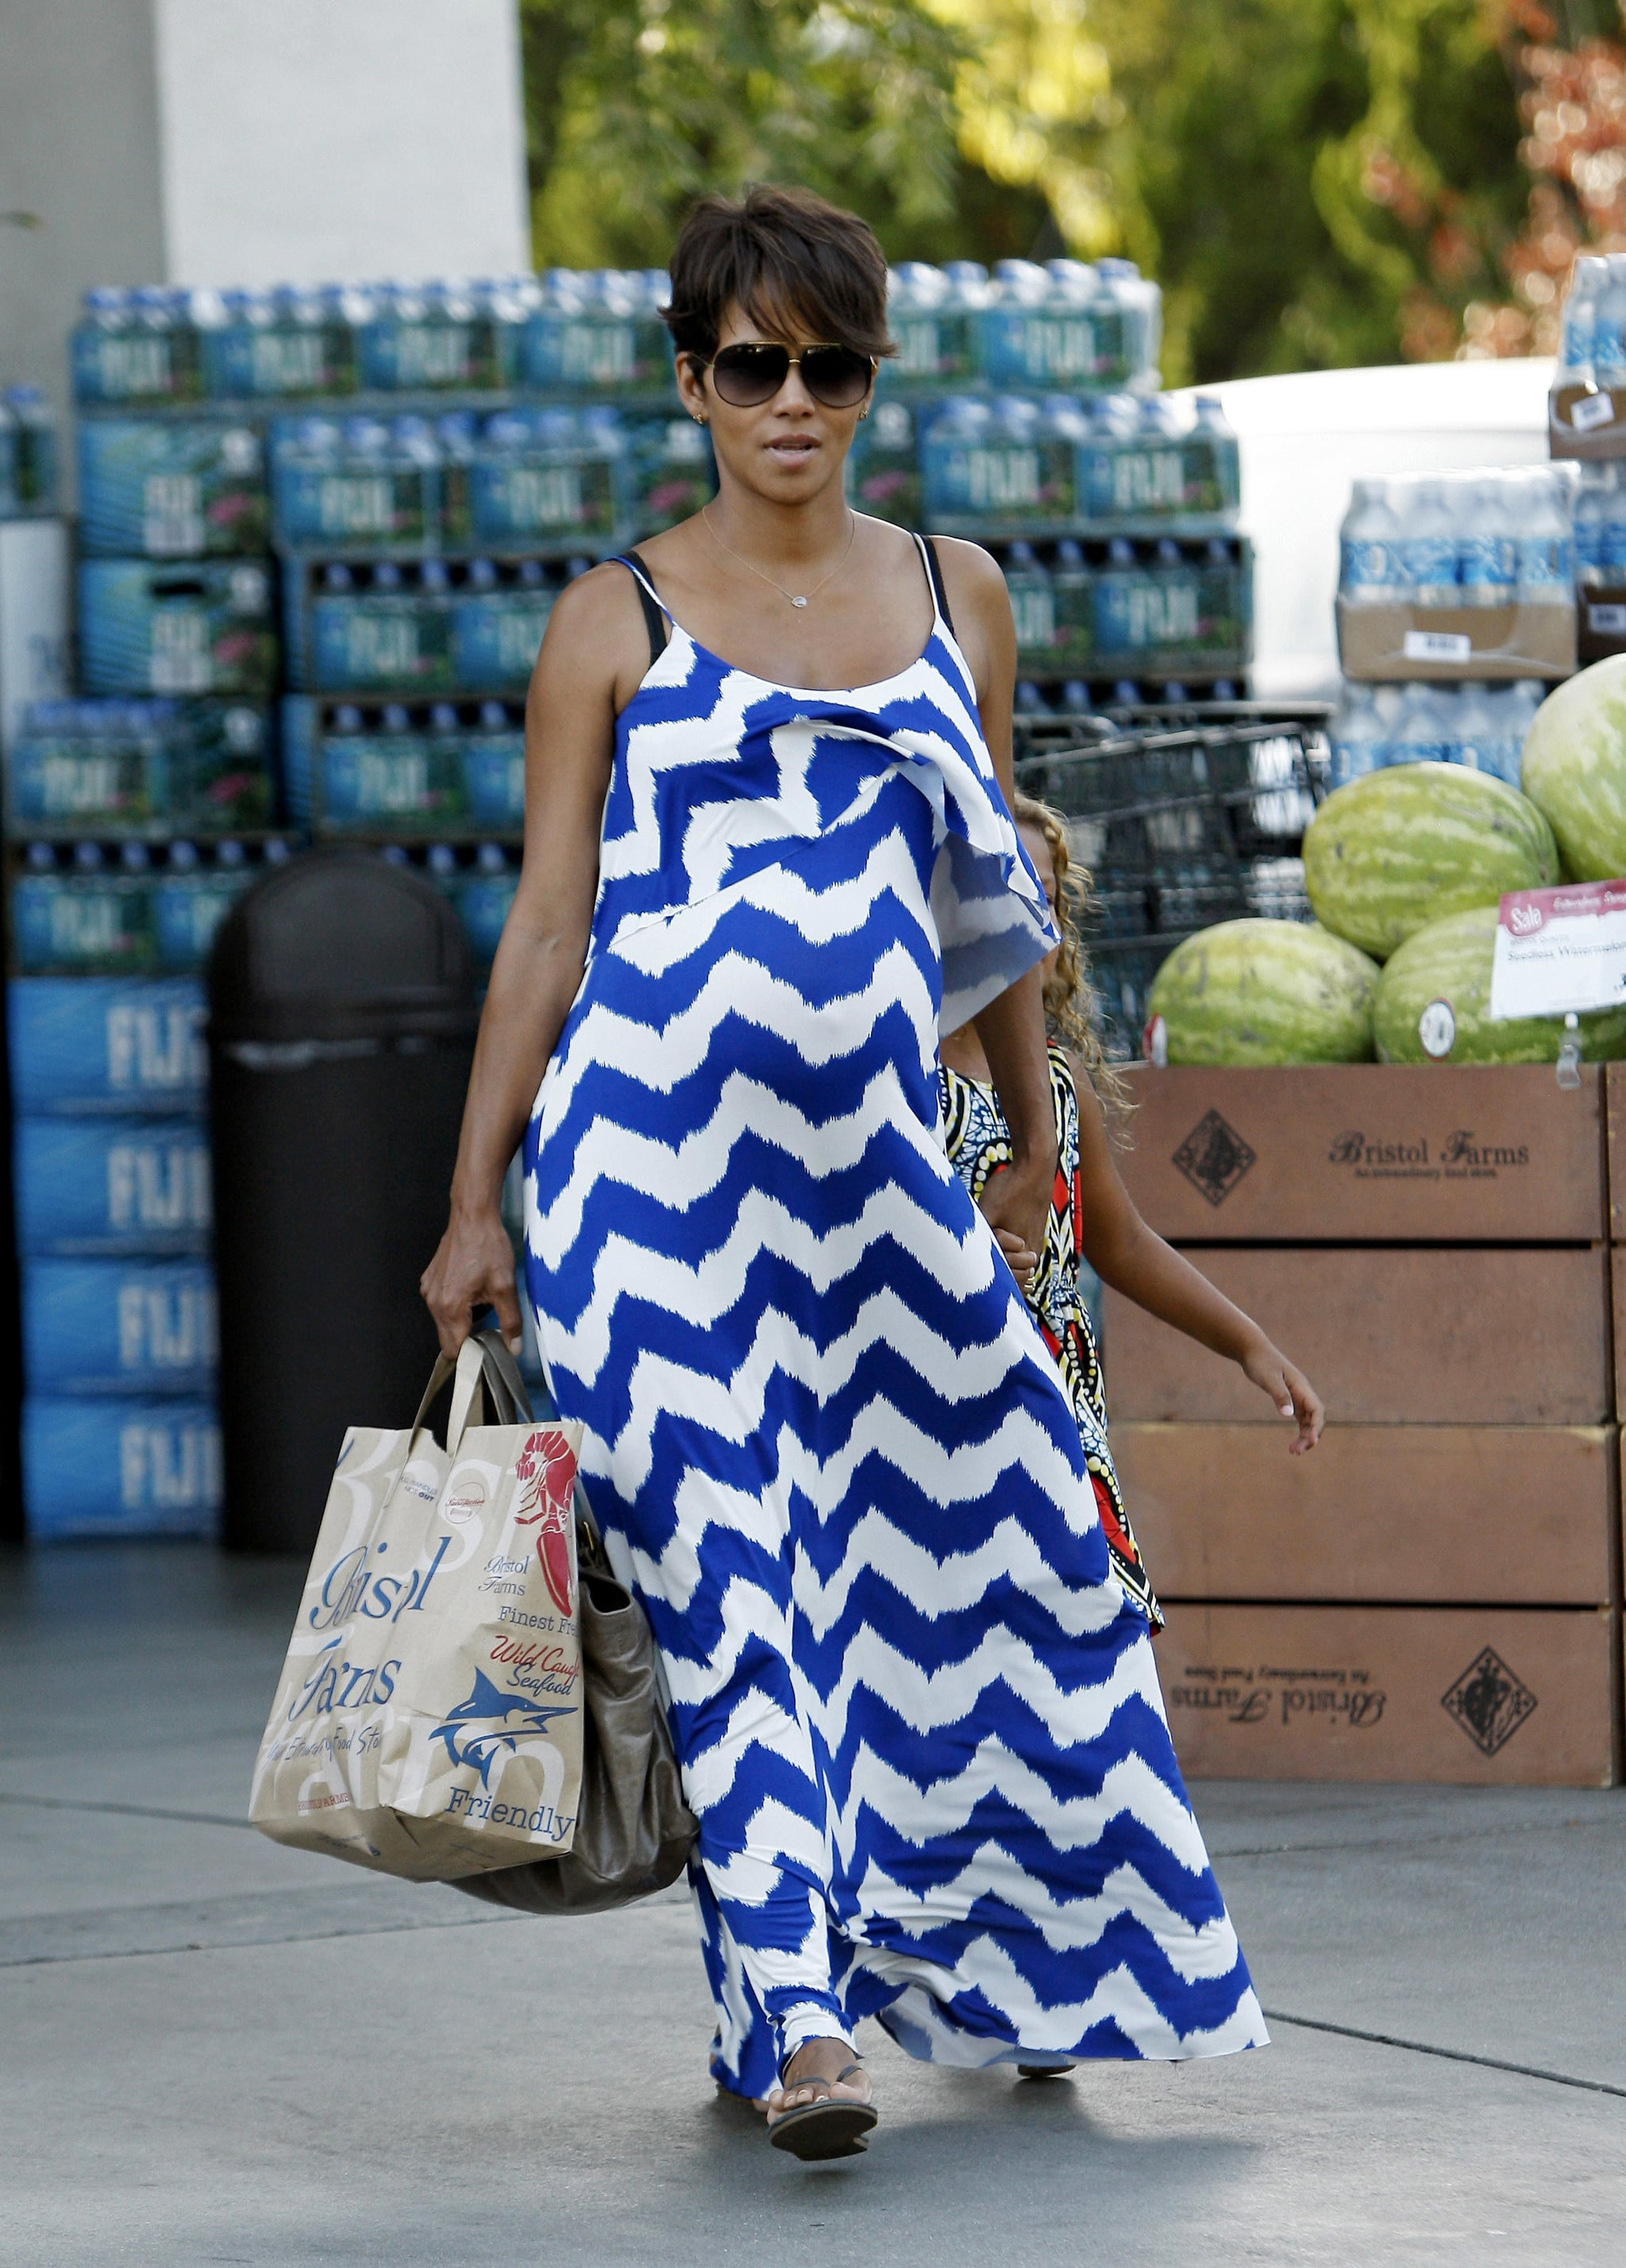 A love affair with maxi dresses meant the star stocked up! Similar to the earlier style we spotted, this one features a bib top and tighter zigzags.